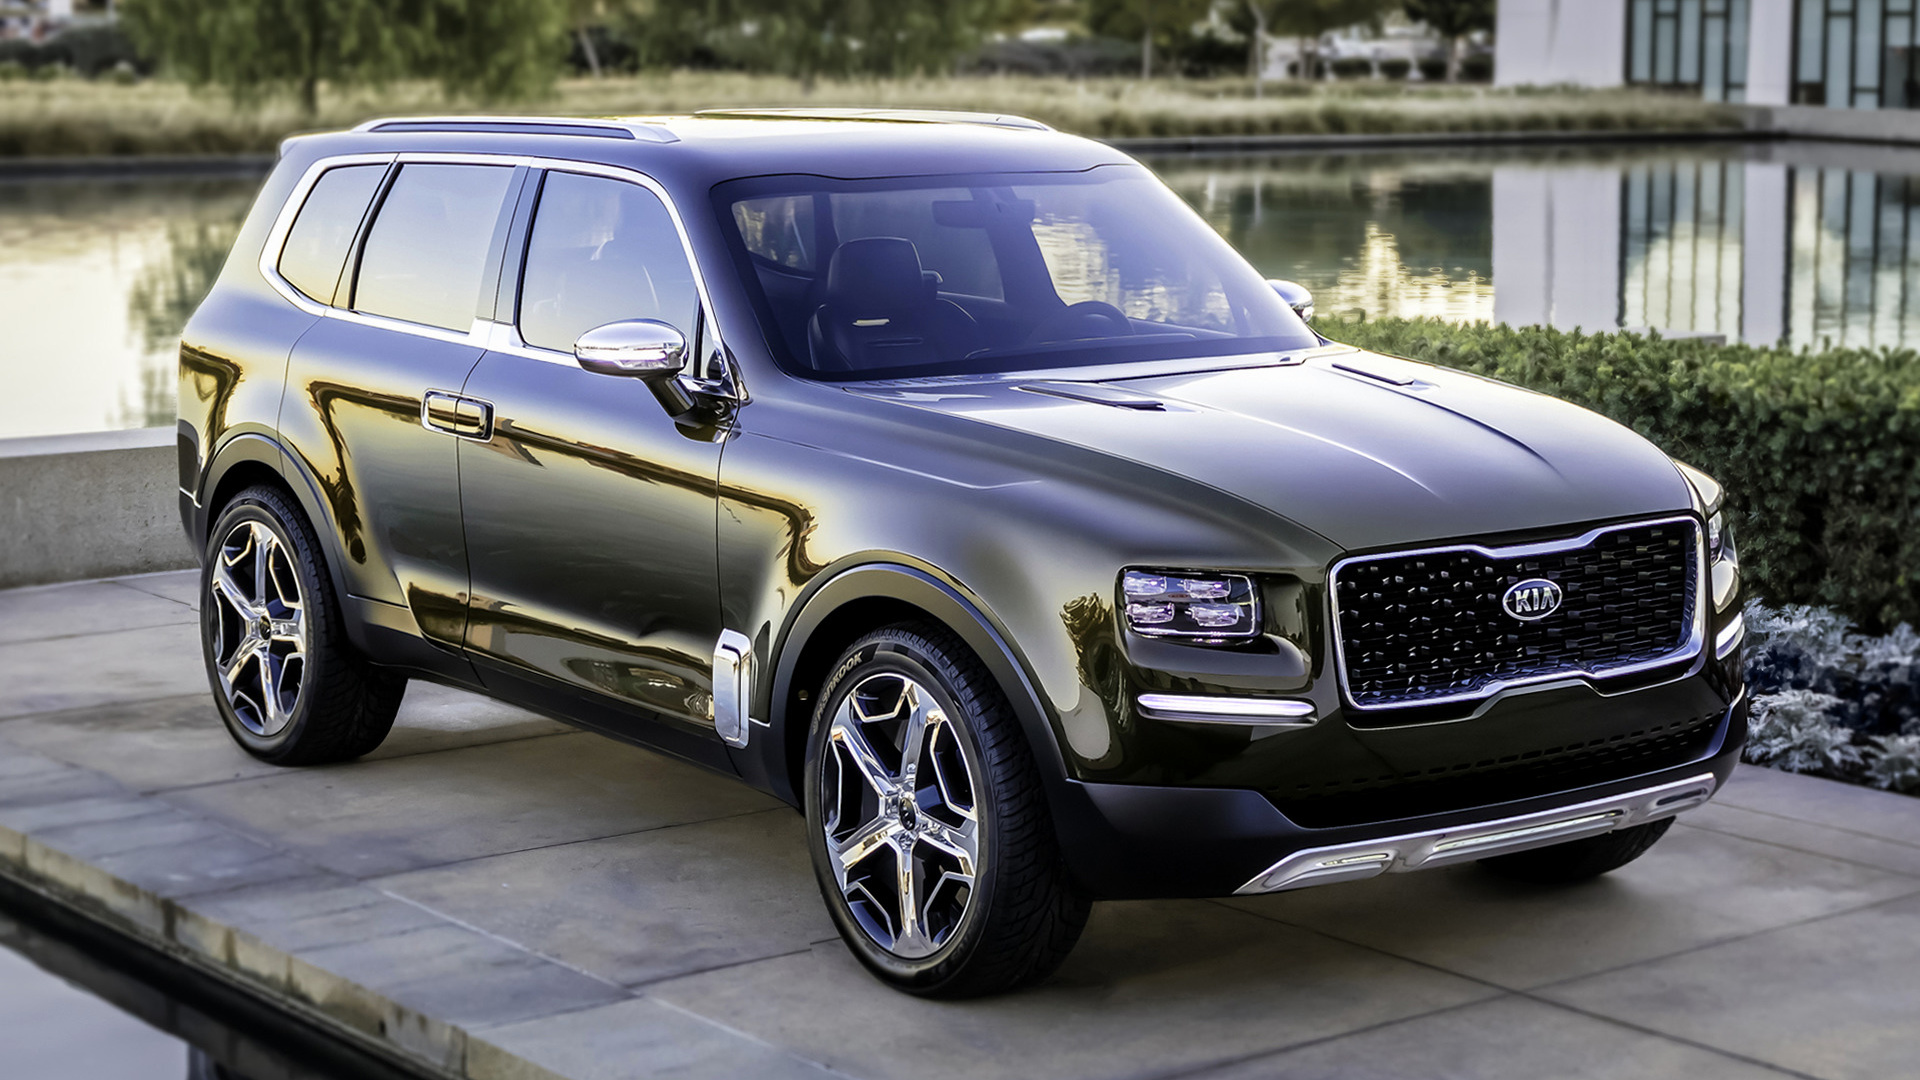 2016 Kia Telluride Concept   Wallpapers and HD Images Car Pixel 1920x1080